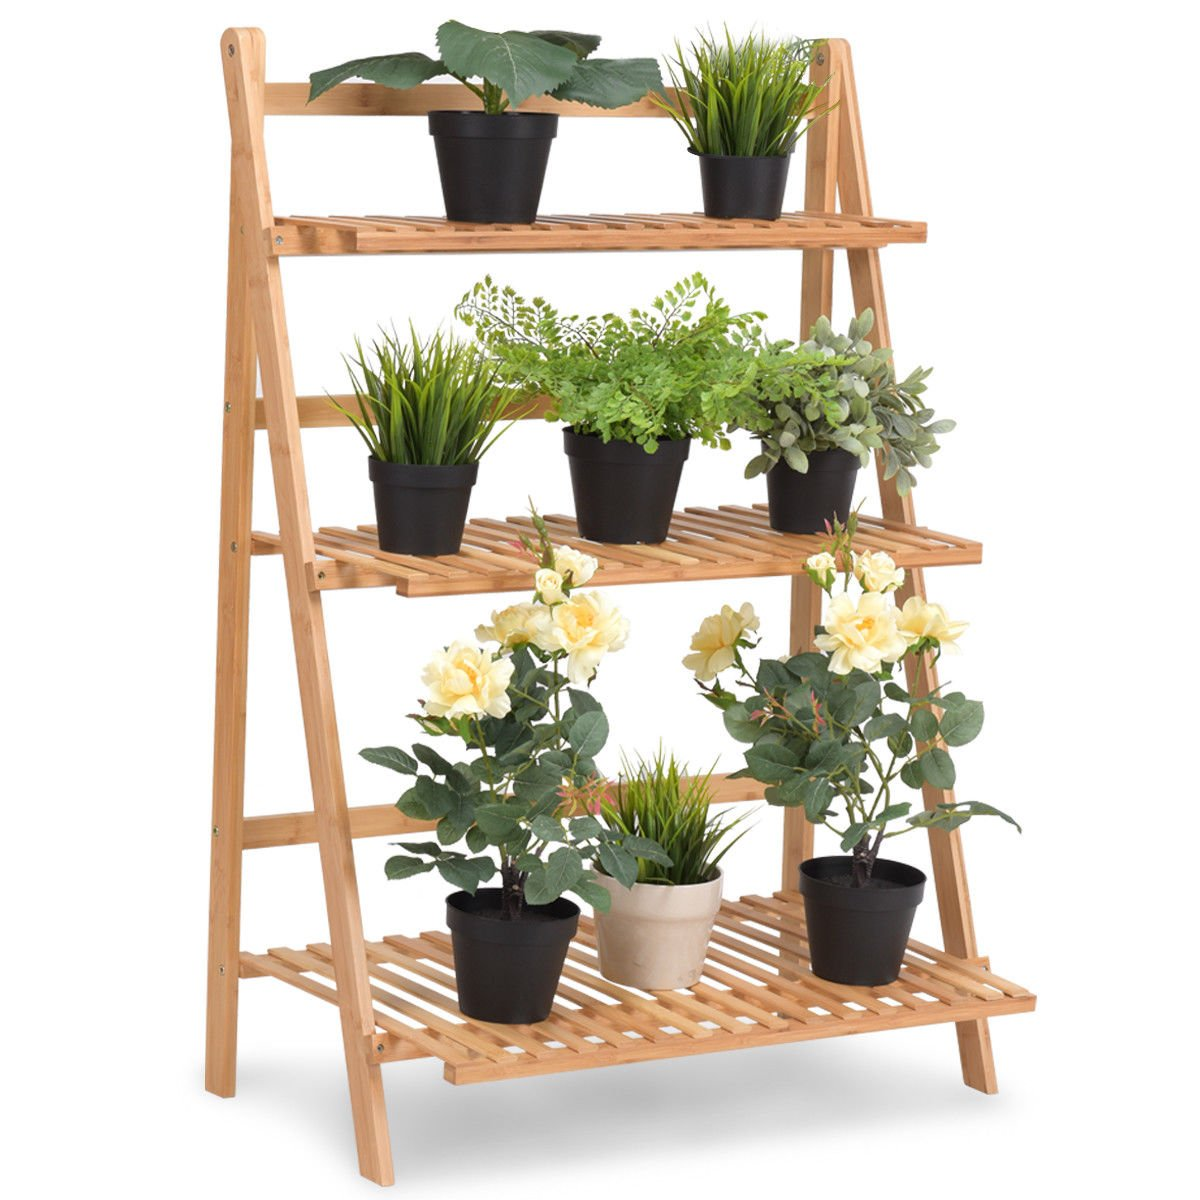 Giantex Plant Flower Stand Rack Shelf 3-Tier Bamboo Foldable Pot Racks Planter Organizer Display Shelves, 27.6'' x15.7'' x 38.2'' (Natural)